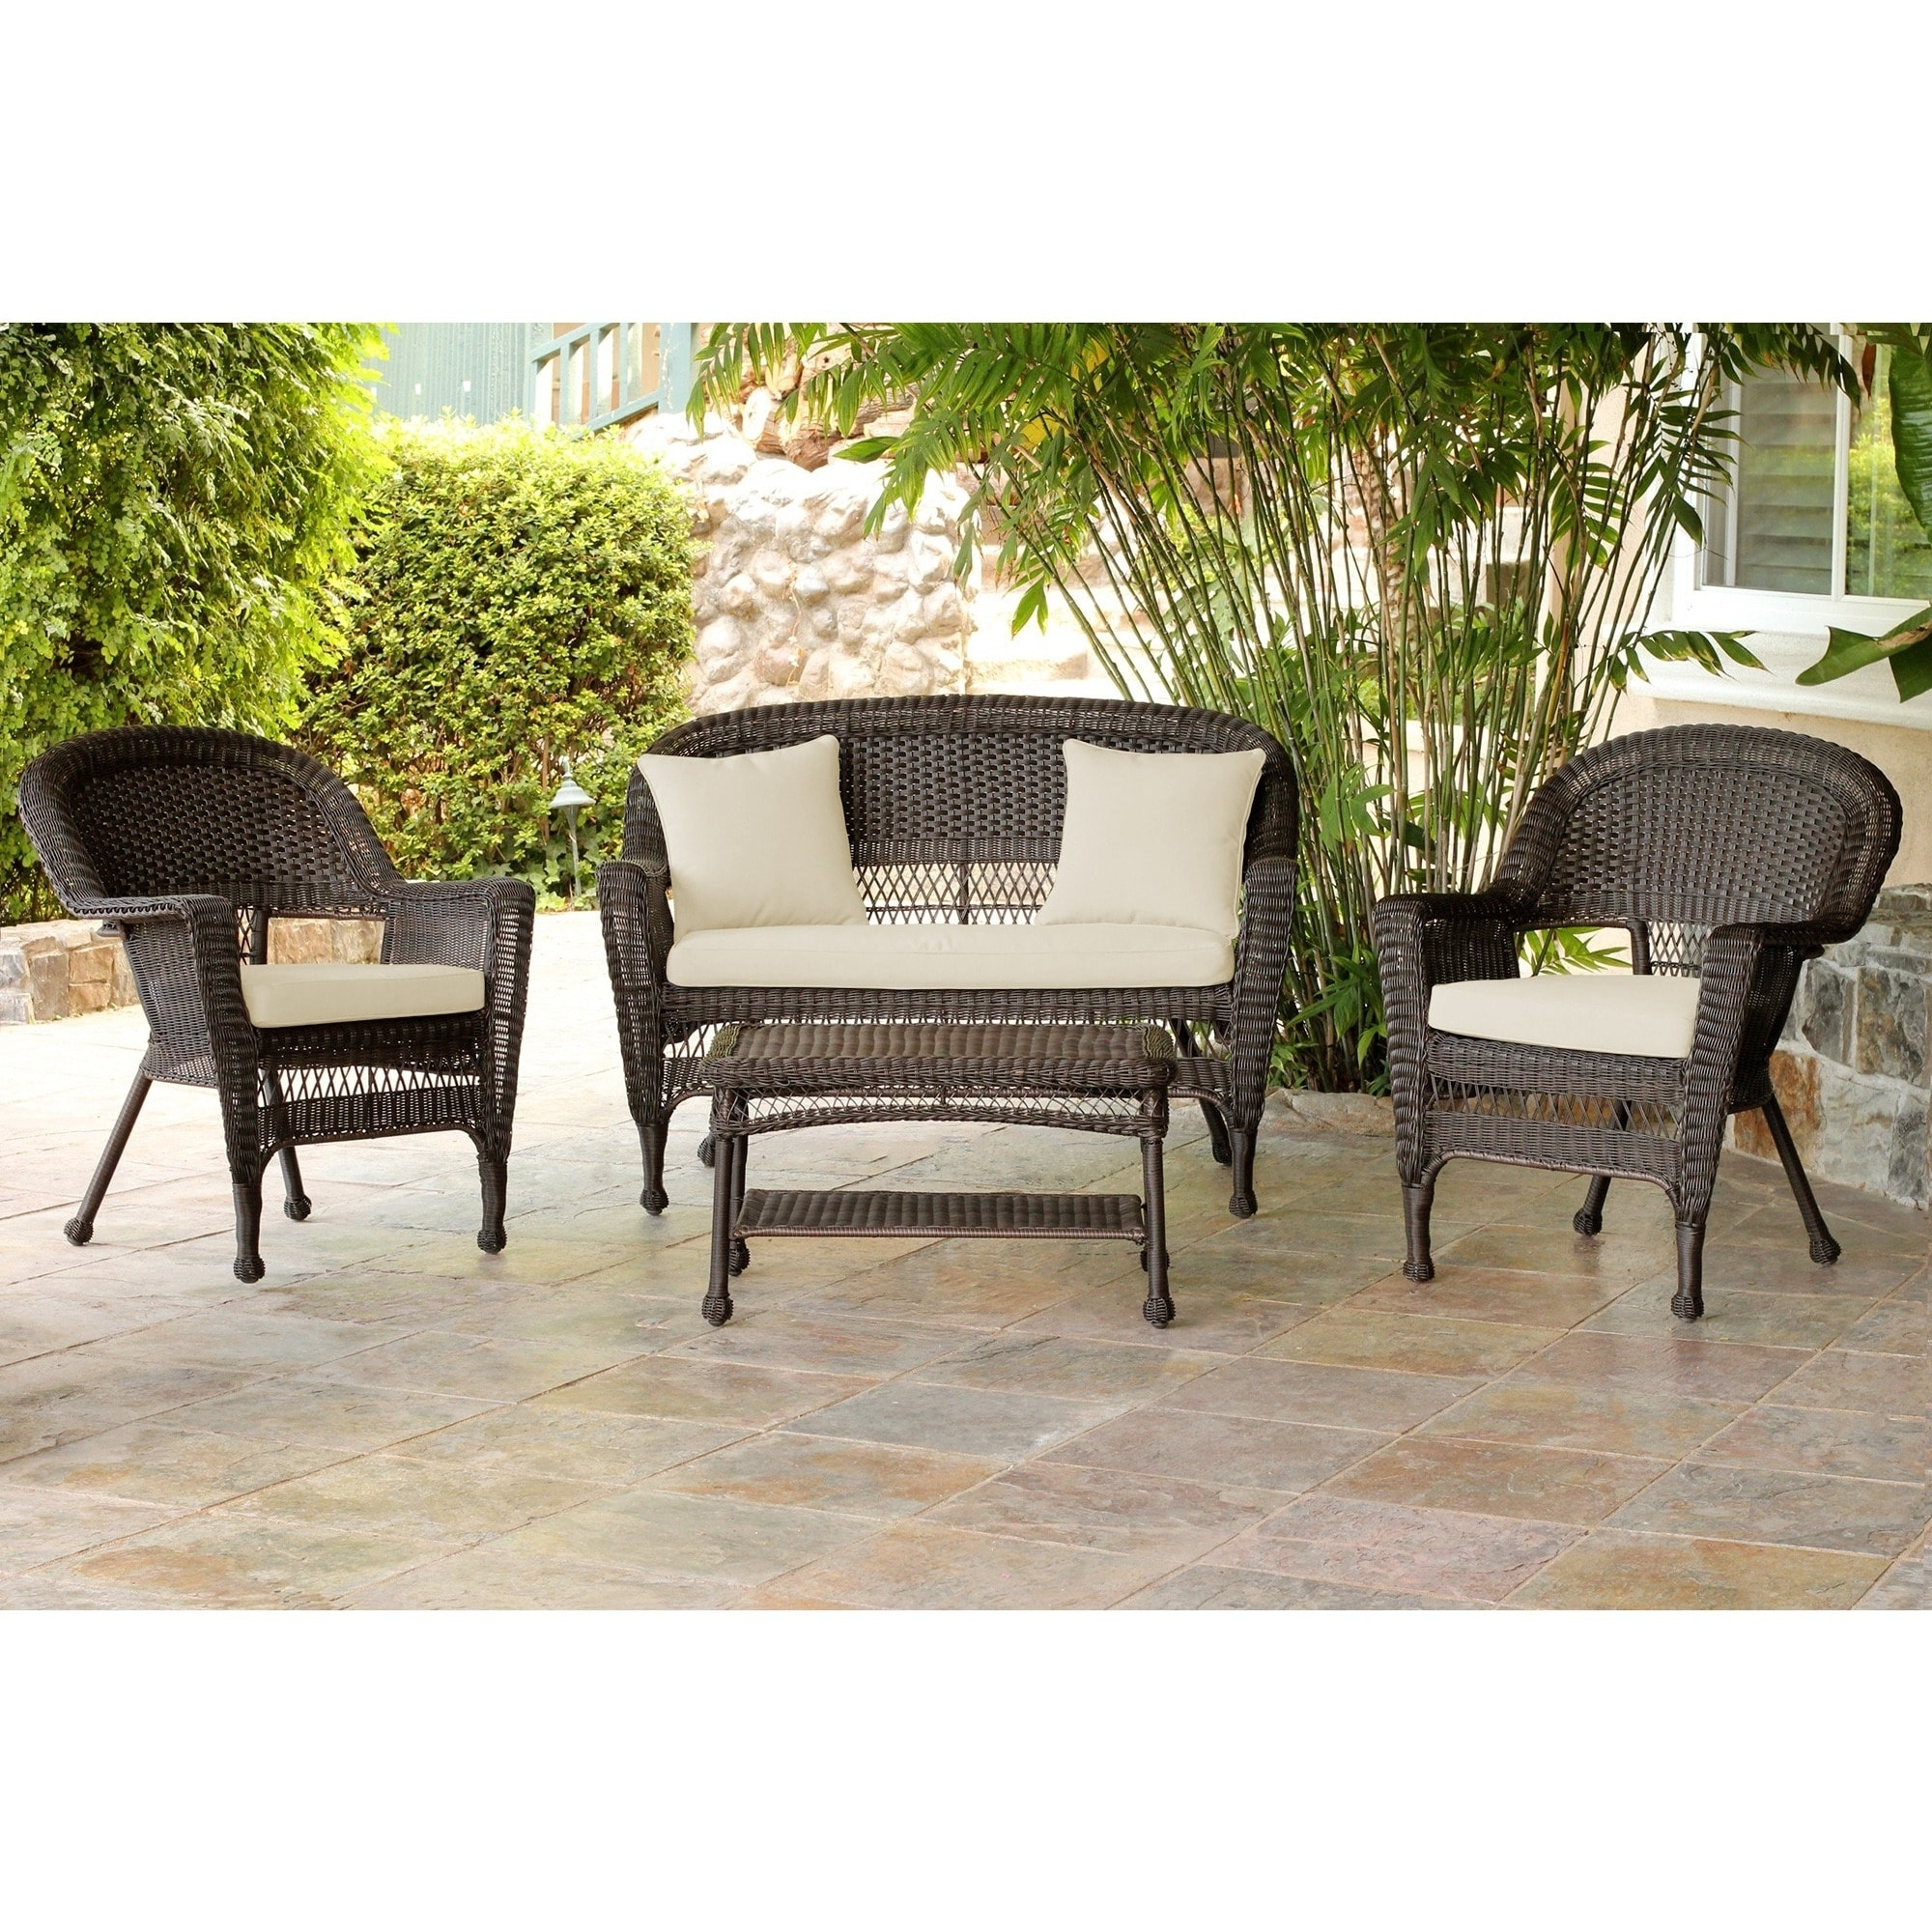 Shop Espresso Wicker 4 Piece Patio Conversation Set – Free Shipping Throughout Most Recently Released Black Patio Conversation Sets (View 16 of 20)